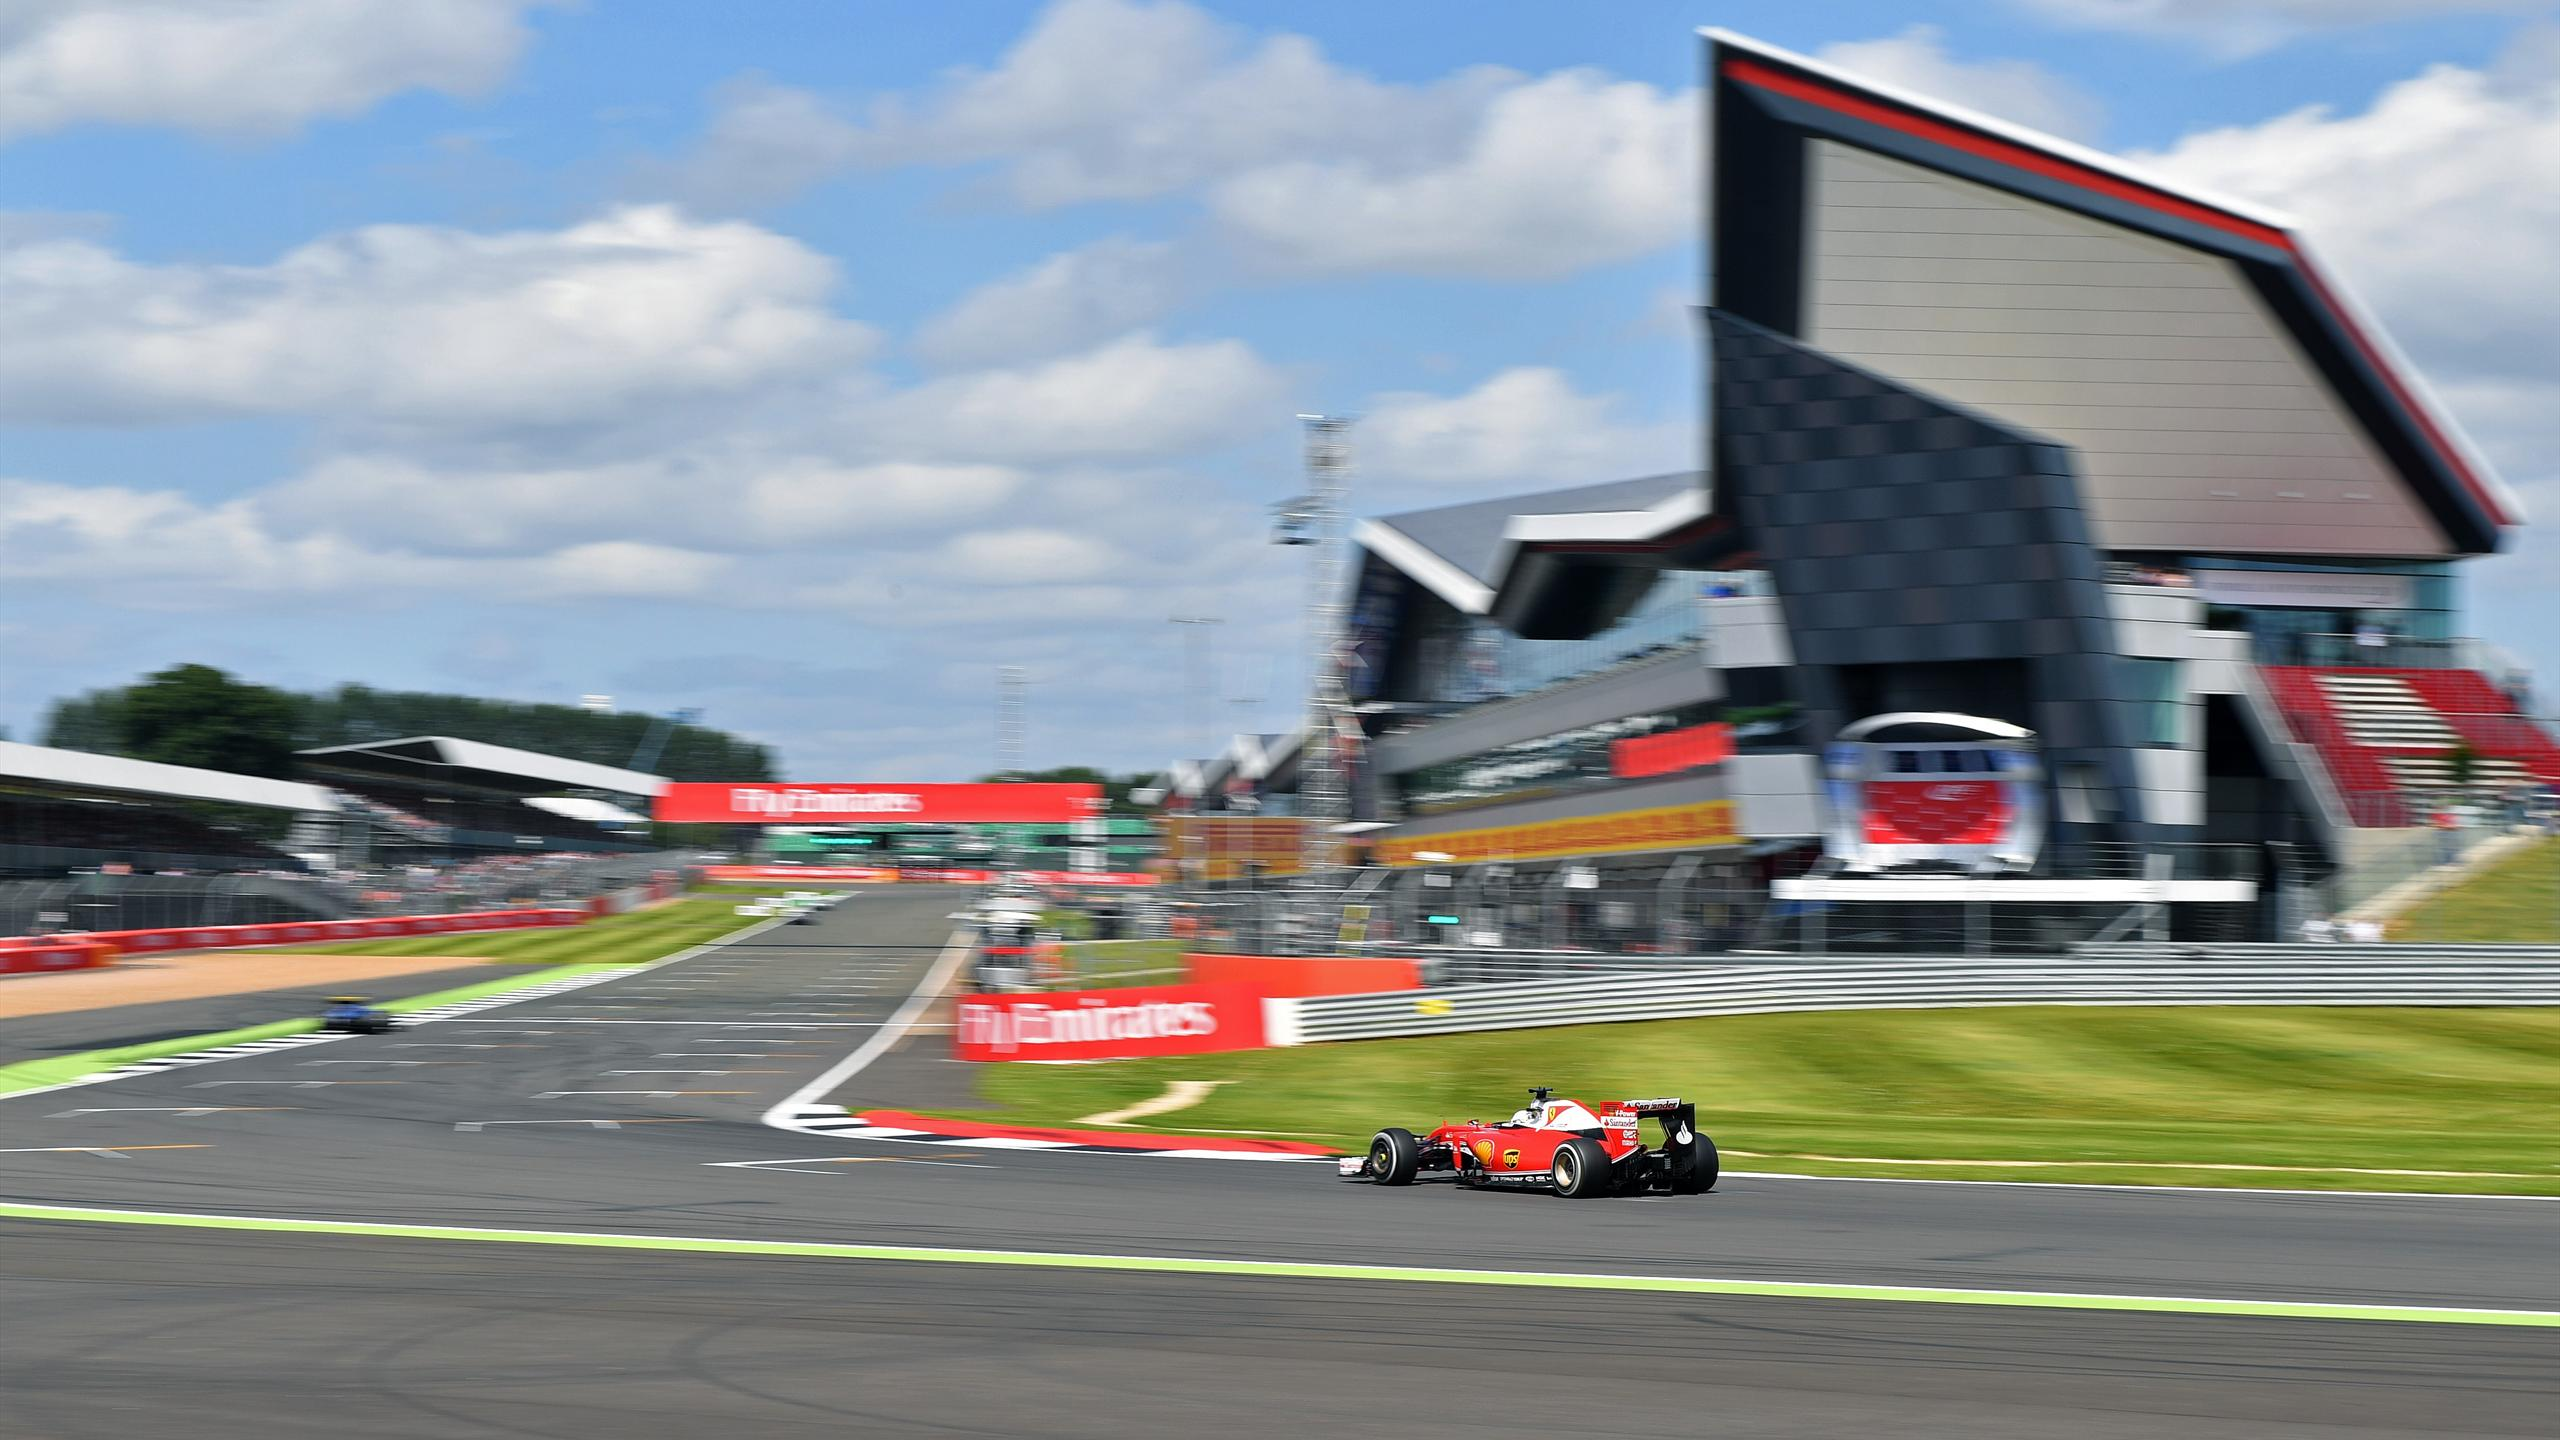 Ferrari's German driver Sebastian Vettel drives during the third practice session during at Silverstone motor racing circuit in Silverstone, central England, on July 9, 2016